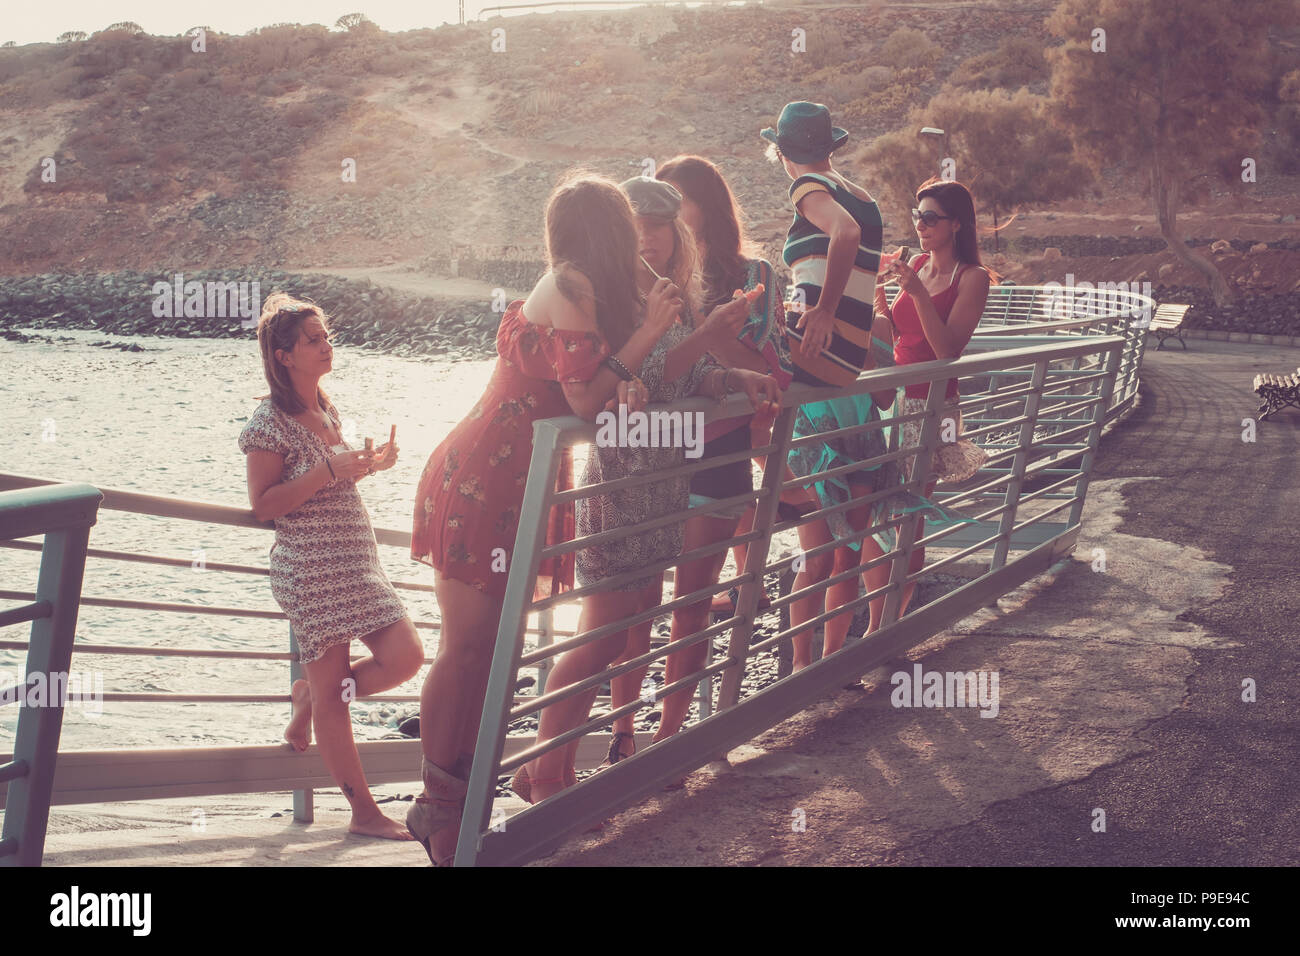 group of seven nice and beautiful caucasian girls young women have fun and laugh and smiles outdoor near the ocean during the sunset. backlight paople - Stock Image